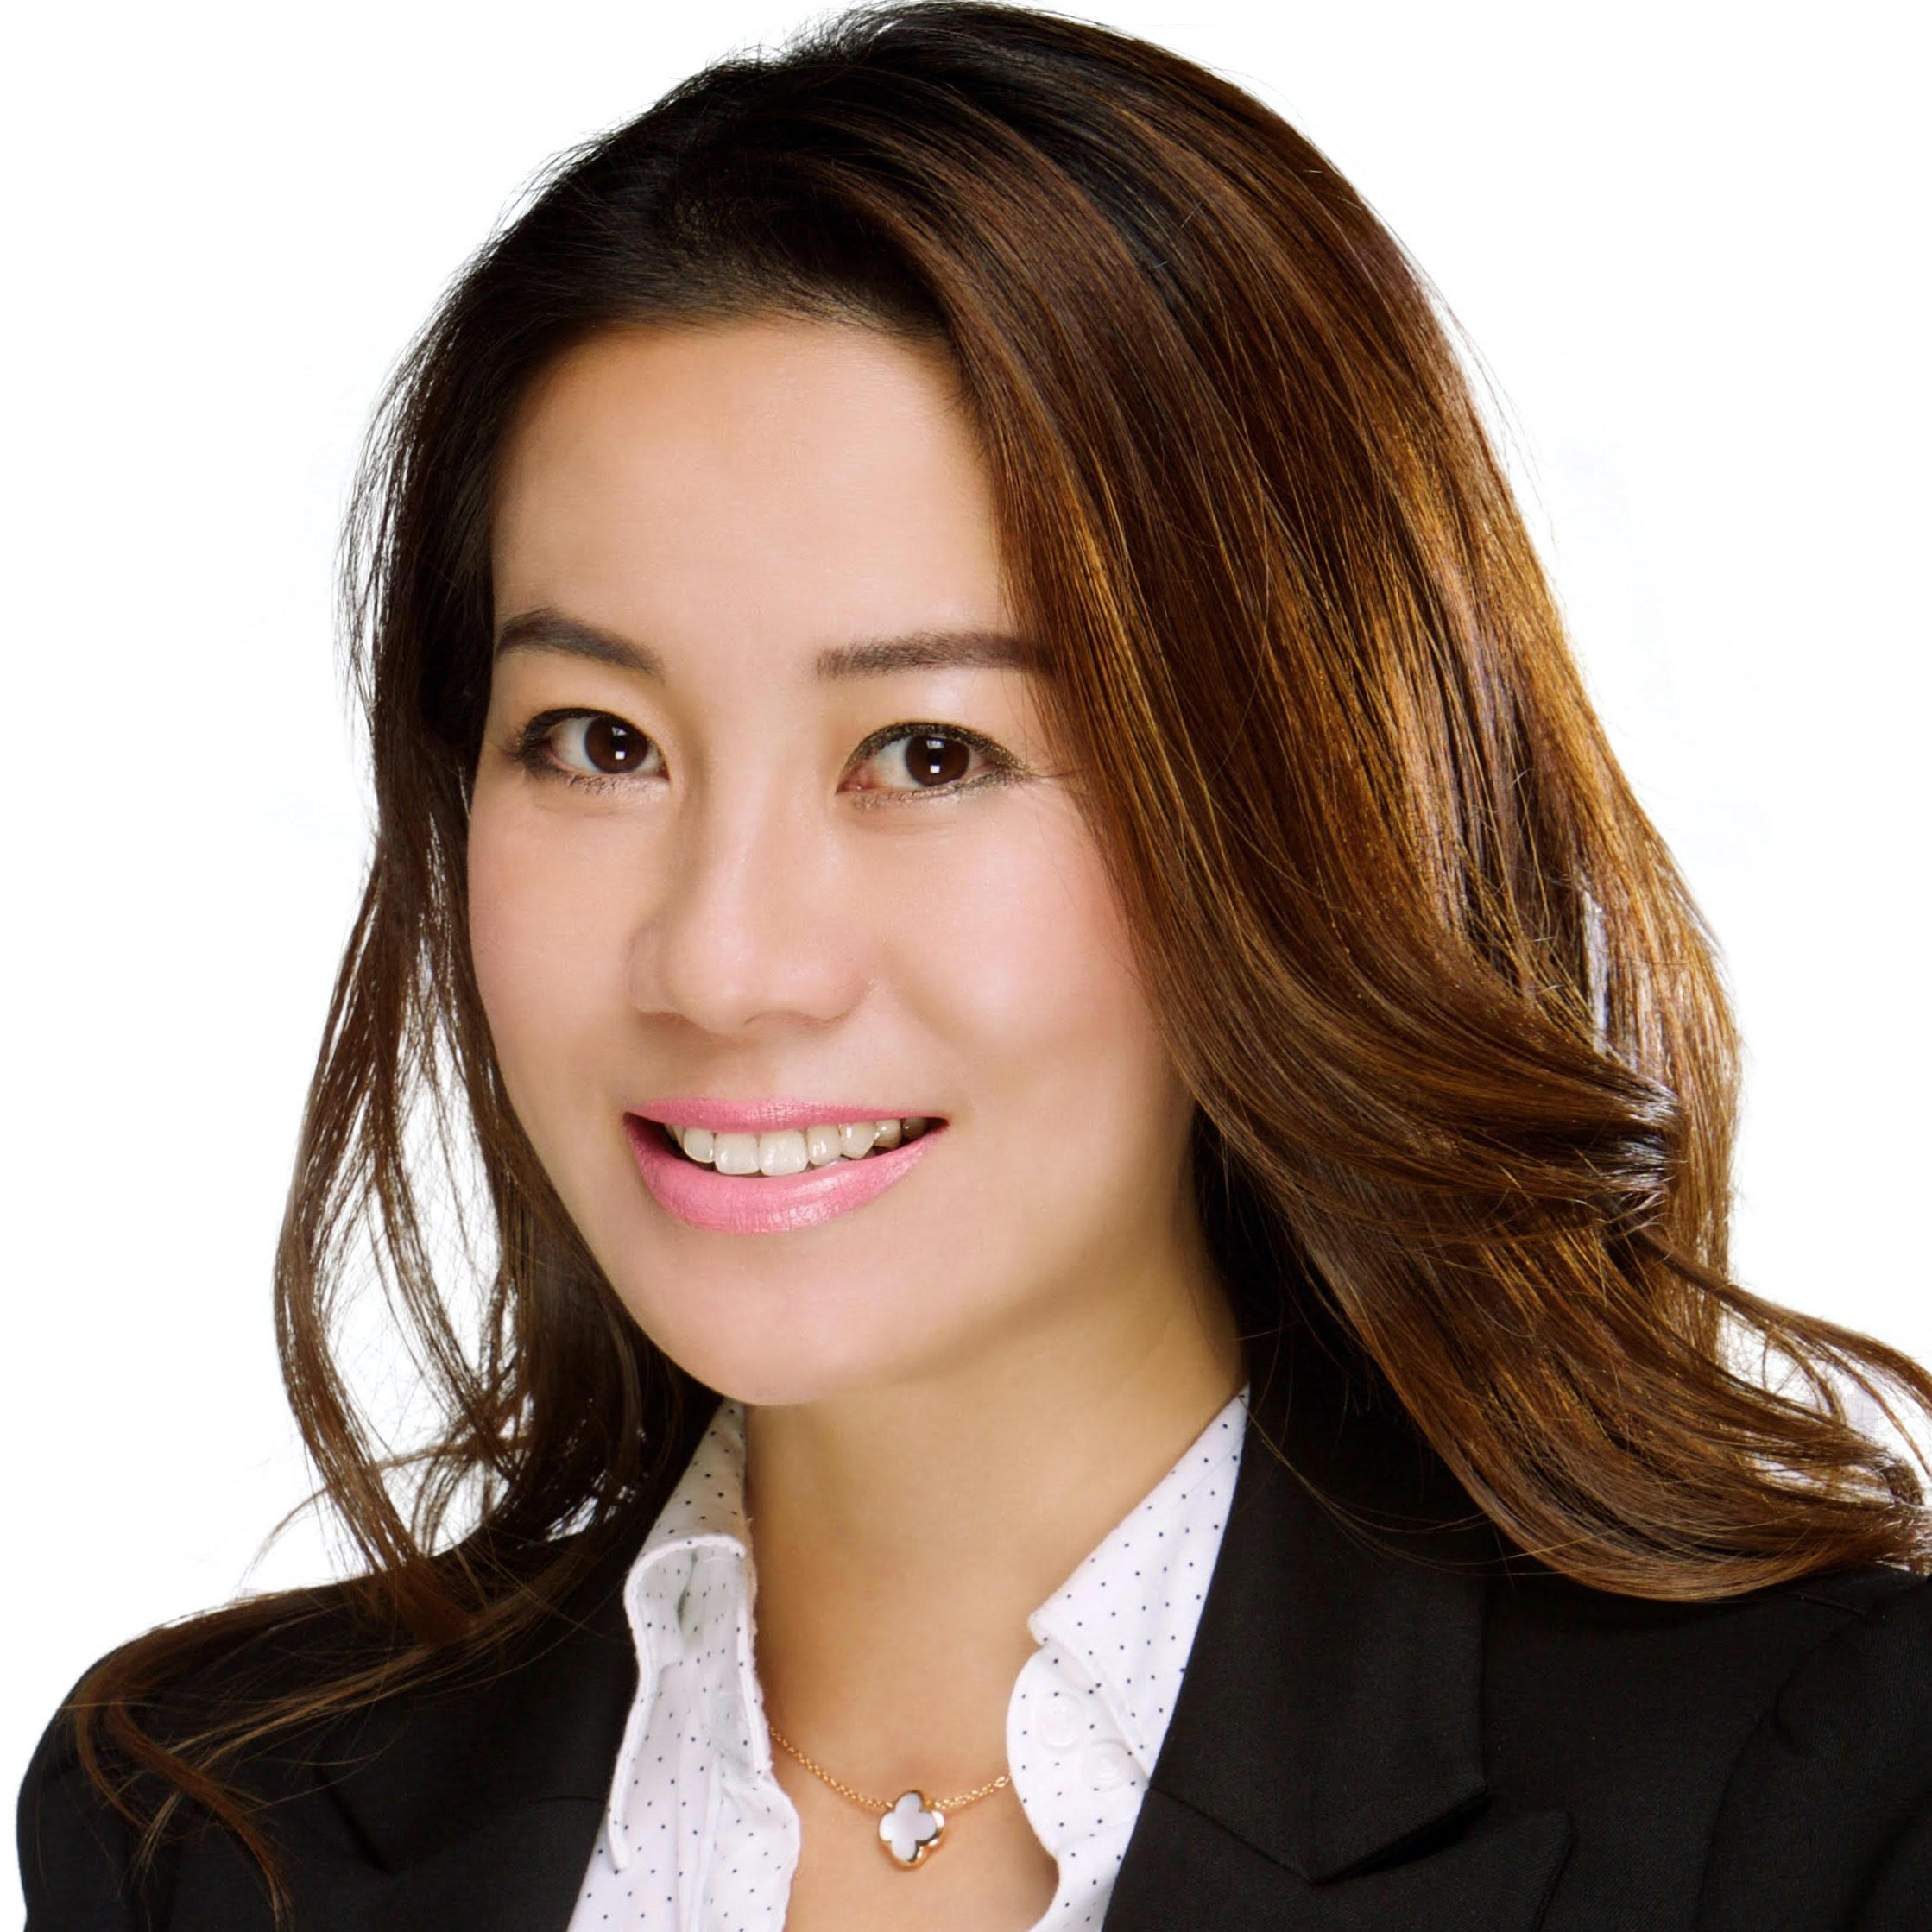 Carrie Chen